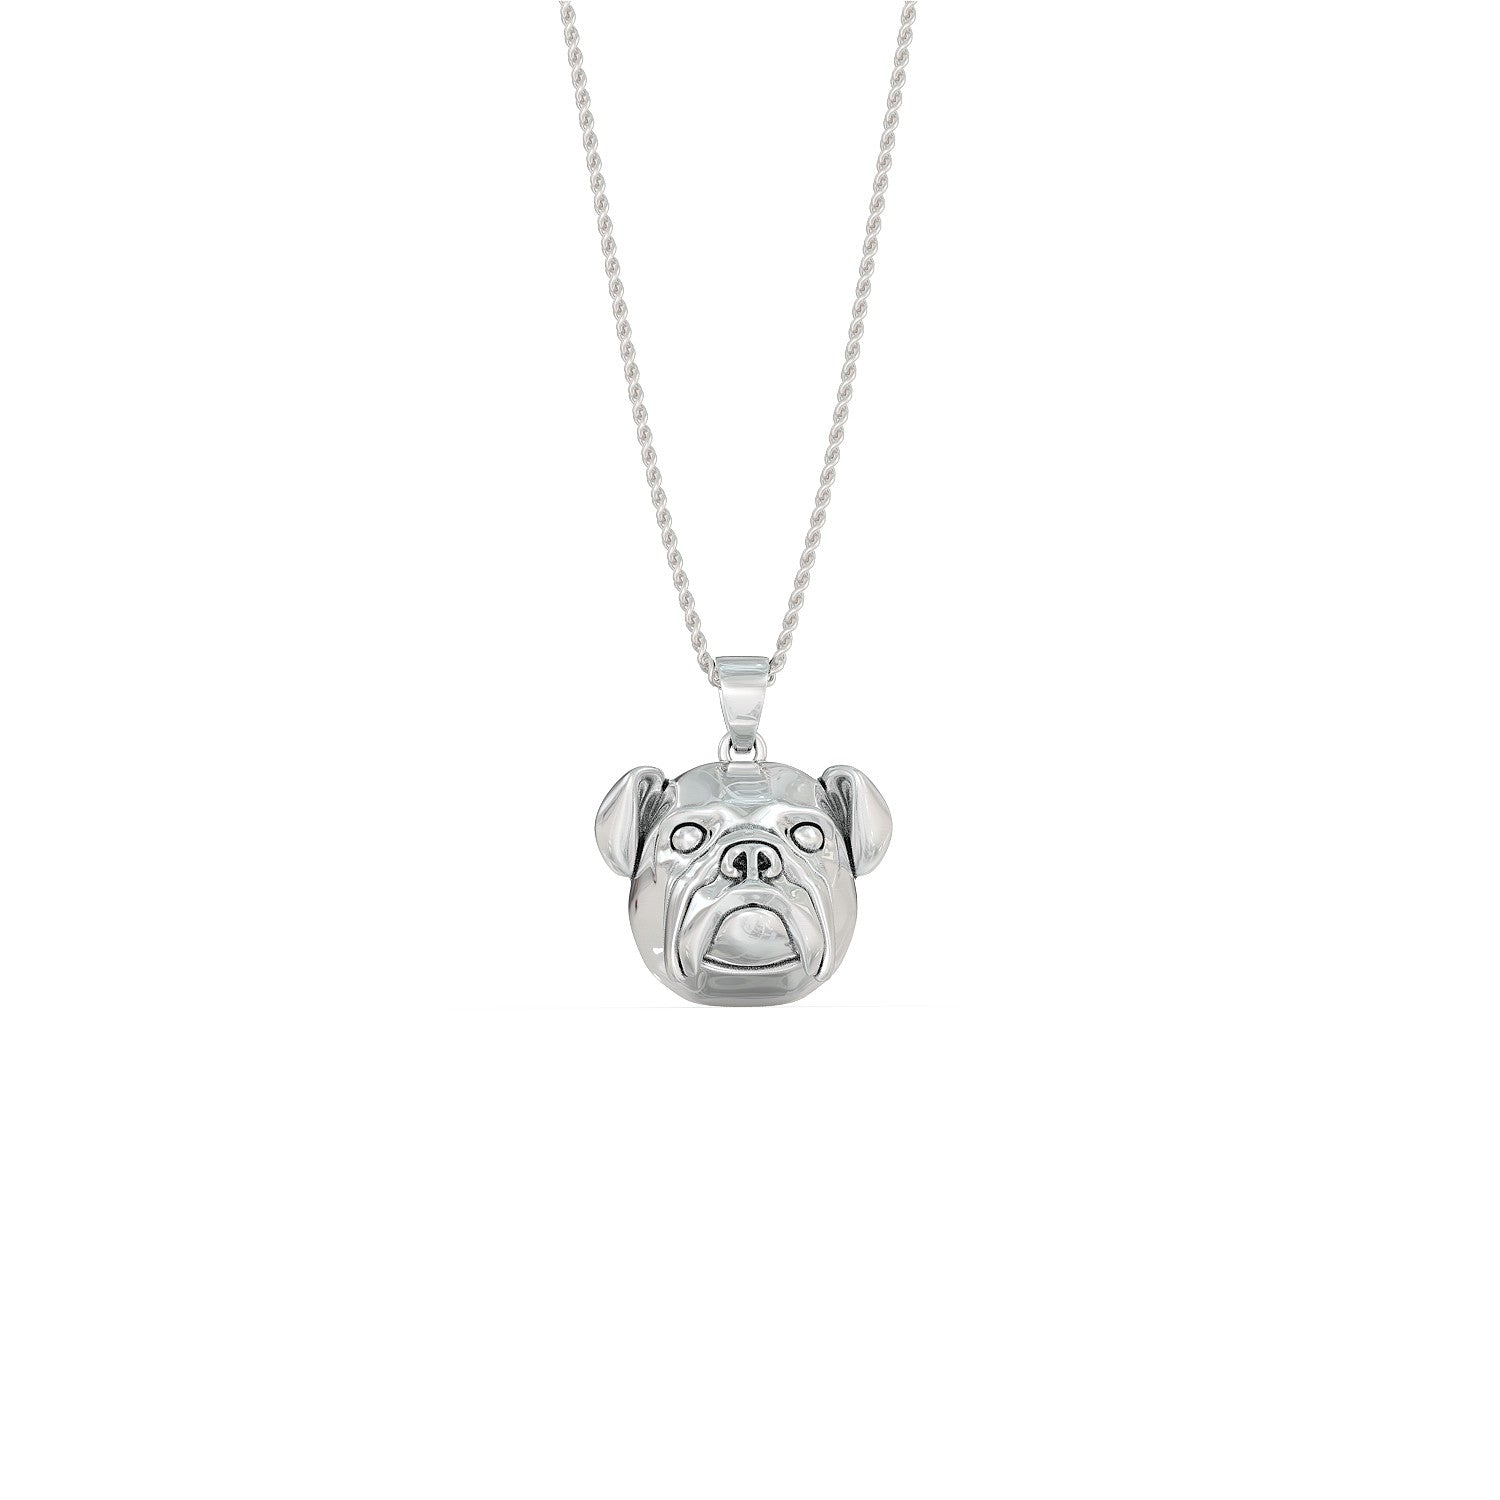 Pitbull Thought Necklace